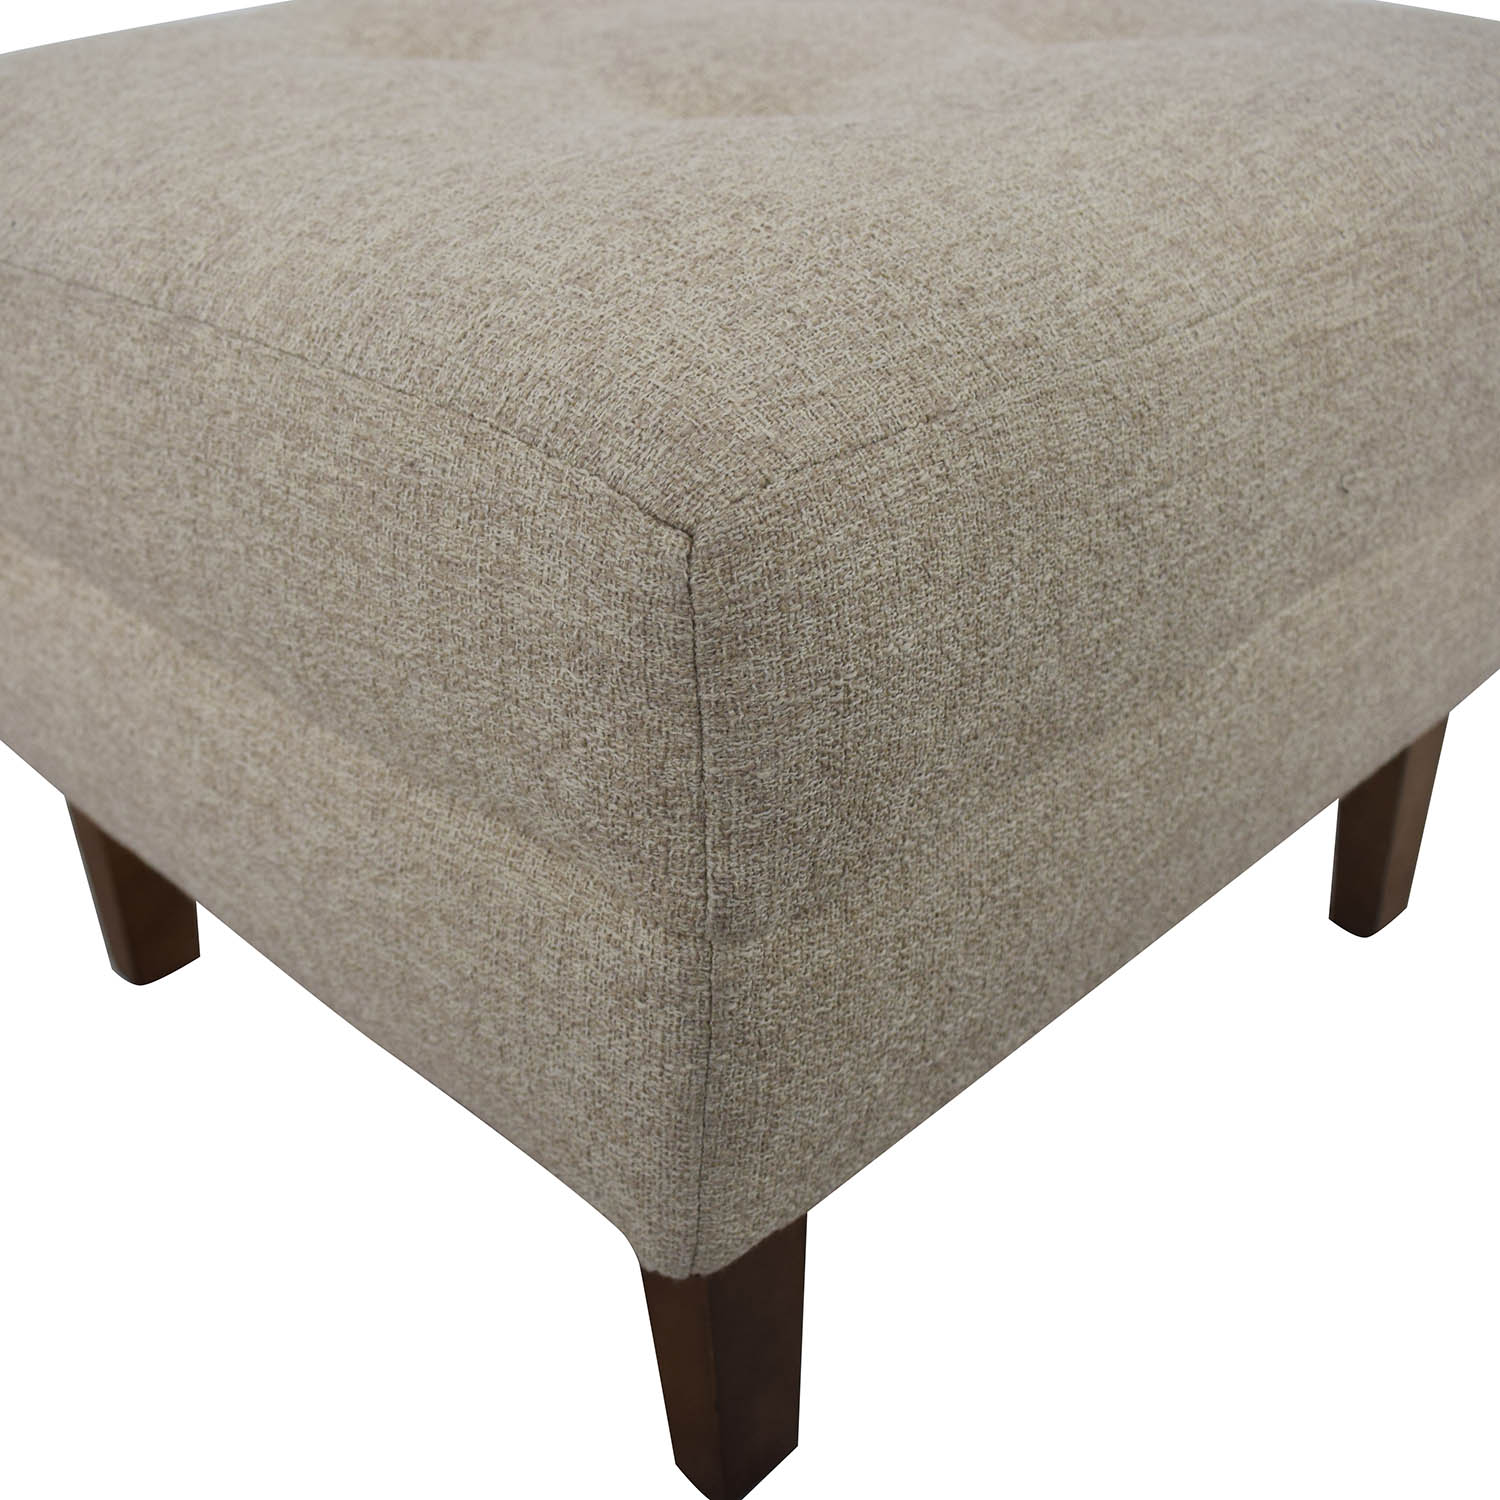 Rowe Furniture Ethan Beige Tufted Ottoman discount